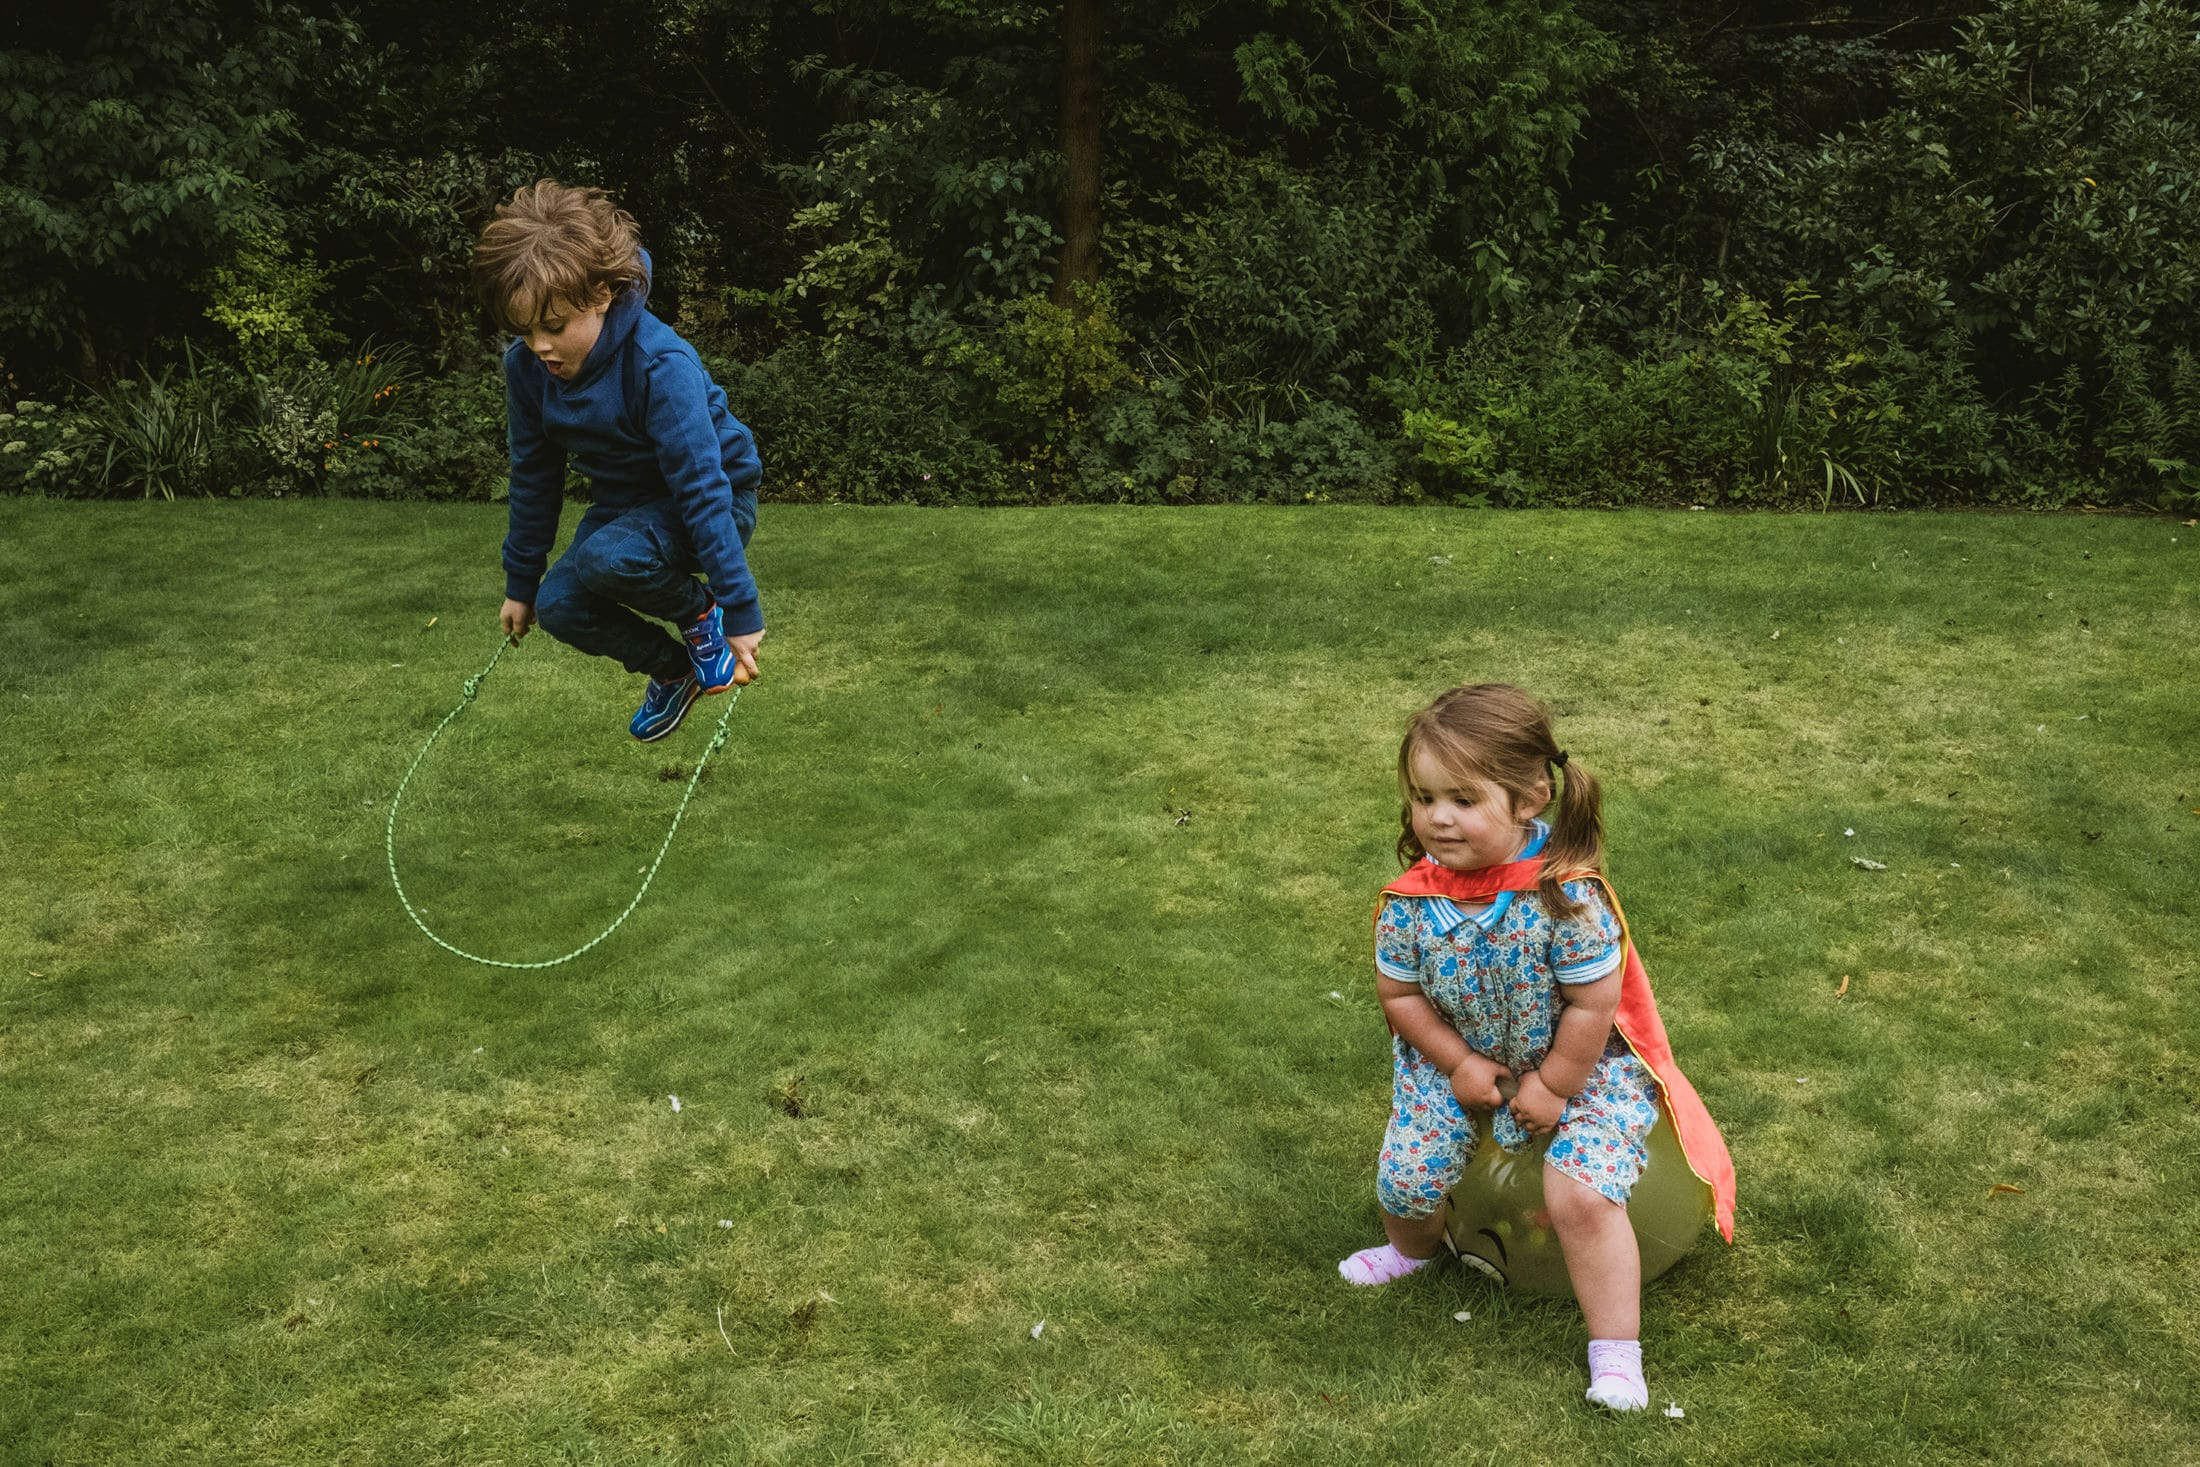 Documentary family shoot, boy jumping with skipping rope, little girl on bouncer wearing a superhero cape